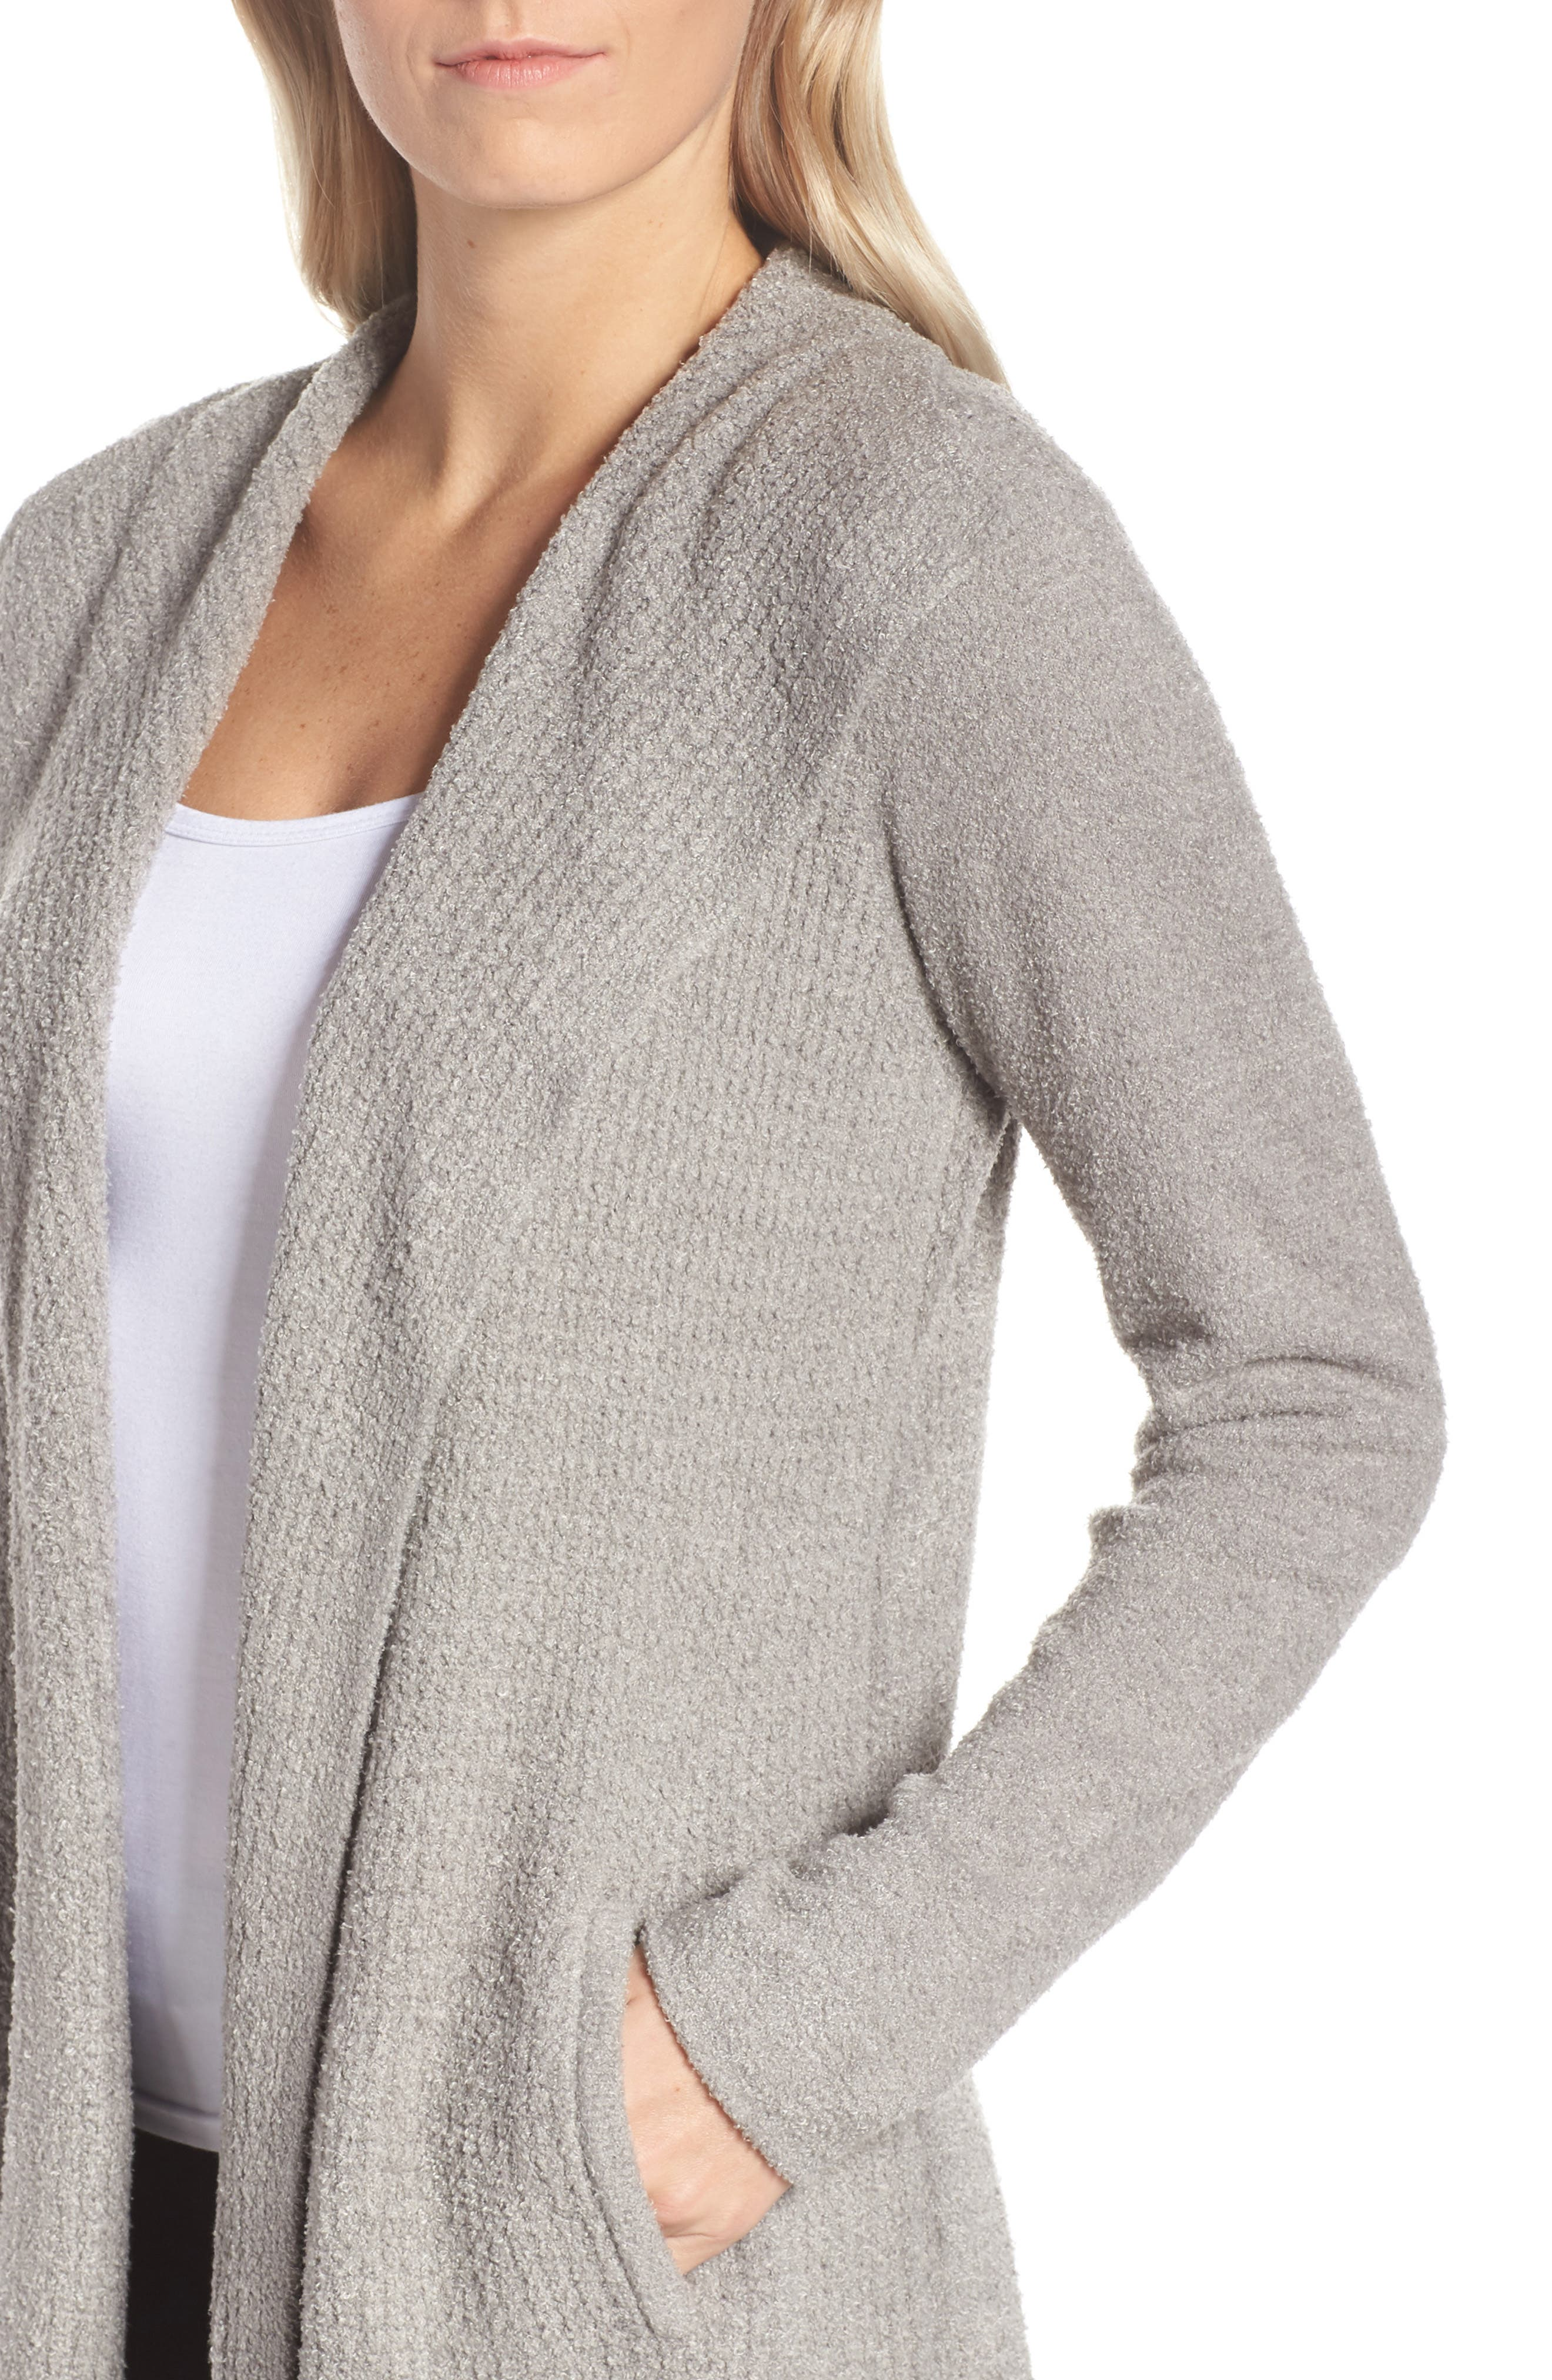 Cozychic<sup>®</sup> Lite Coastal Cardigan,                             Alternate thumbnail 4, color,                             PEWTER